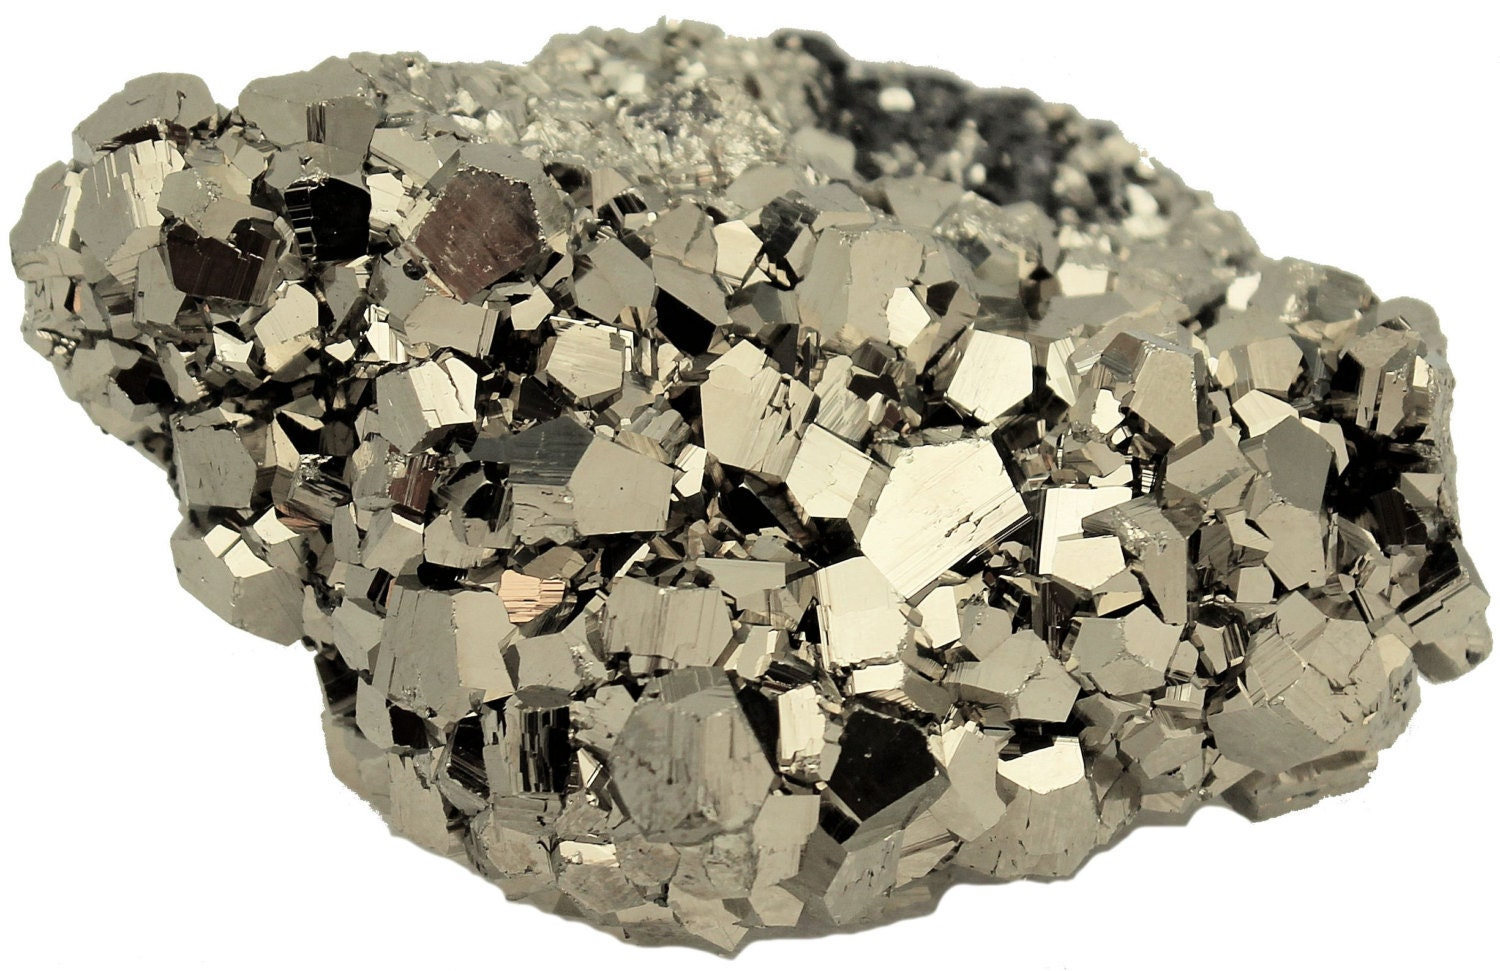 Iron Pyrite Crystals Cluster Fool's Gold 314 grams 3 x